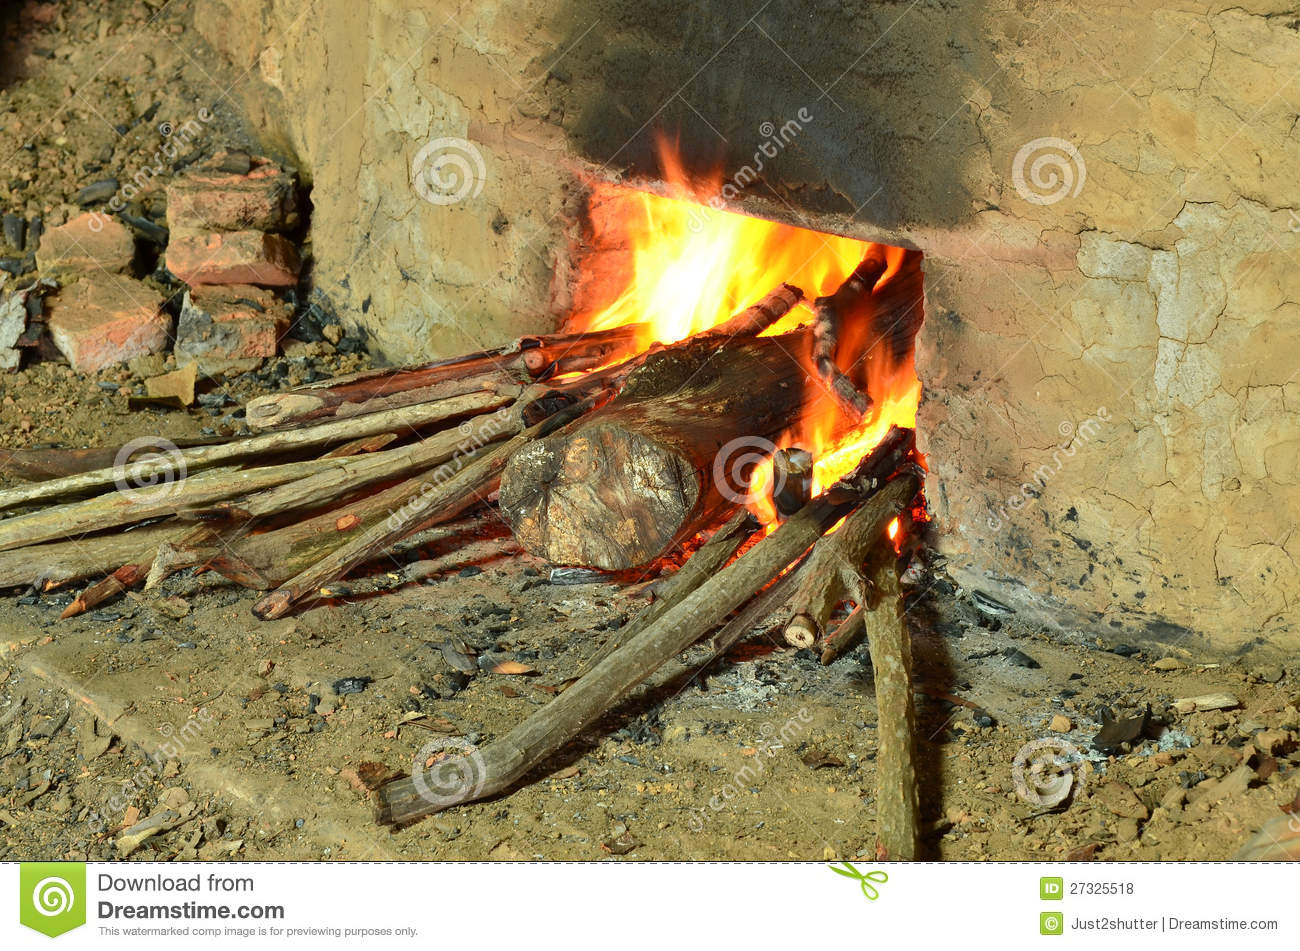 Burning wood to make Charcoal